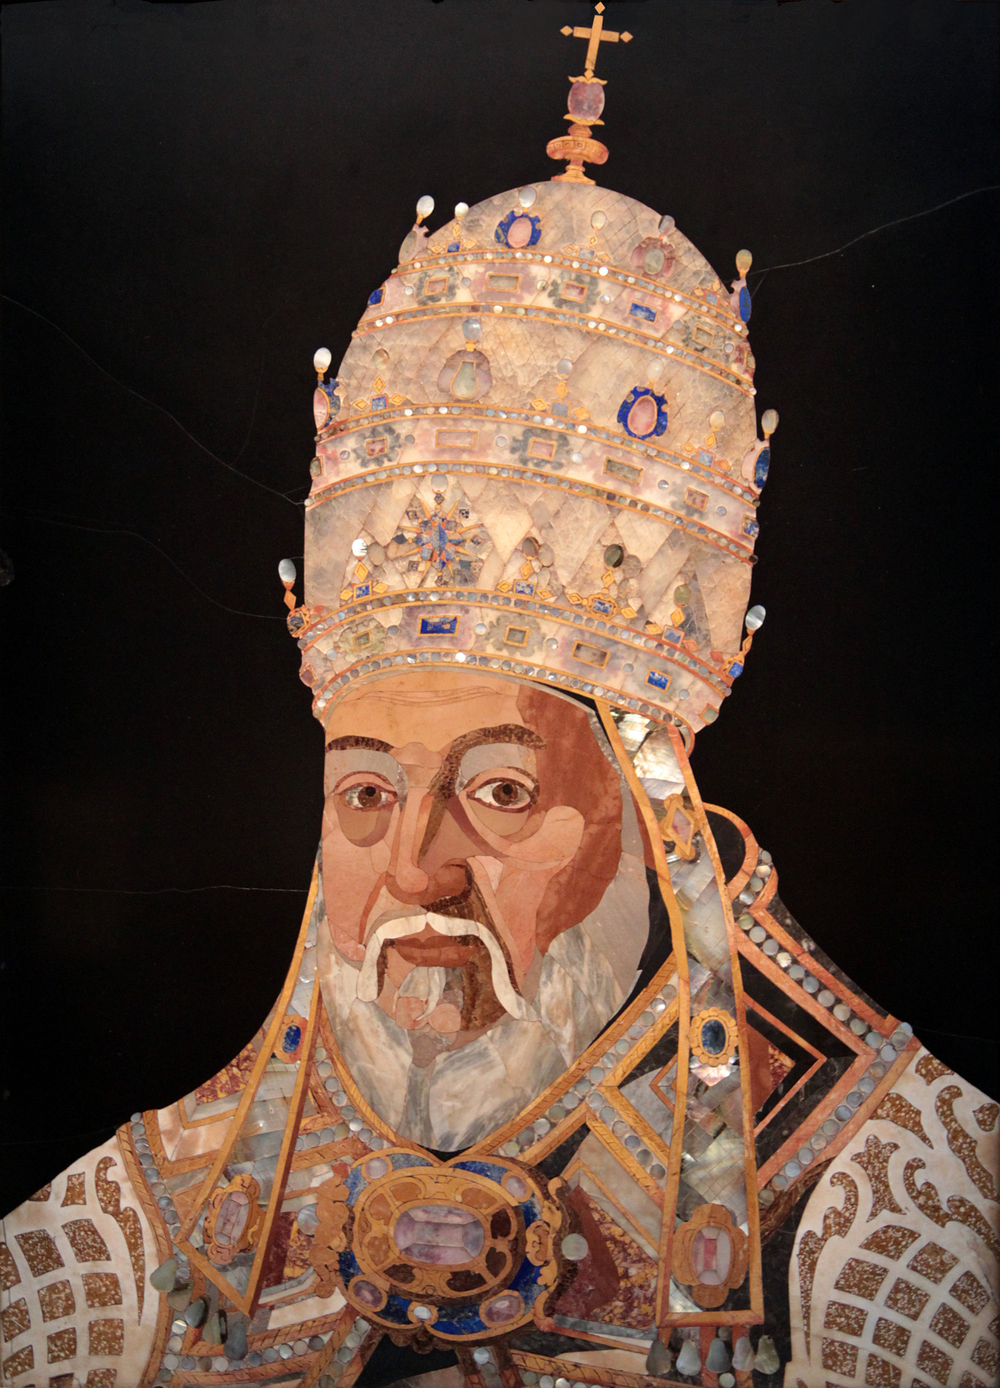 """Pope Clement VIII Aldobrandini"", work made with marble, lapis lazuli, mother of pearl, limestone, calcite and black stone (H. 101.7 cm, l. 75.2 cm) by Medici workshops, on a draft by Jacopo Ligozzi, between 1601 and 1602. J. Paul Getty Museum Collection CC Jean-Pol Grandmont"